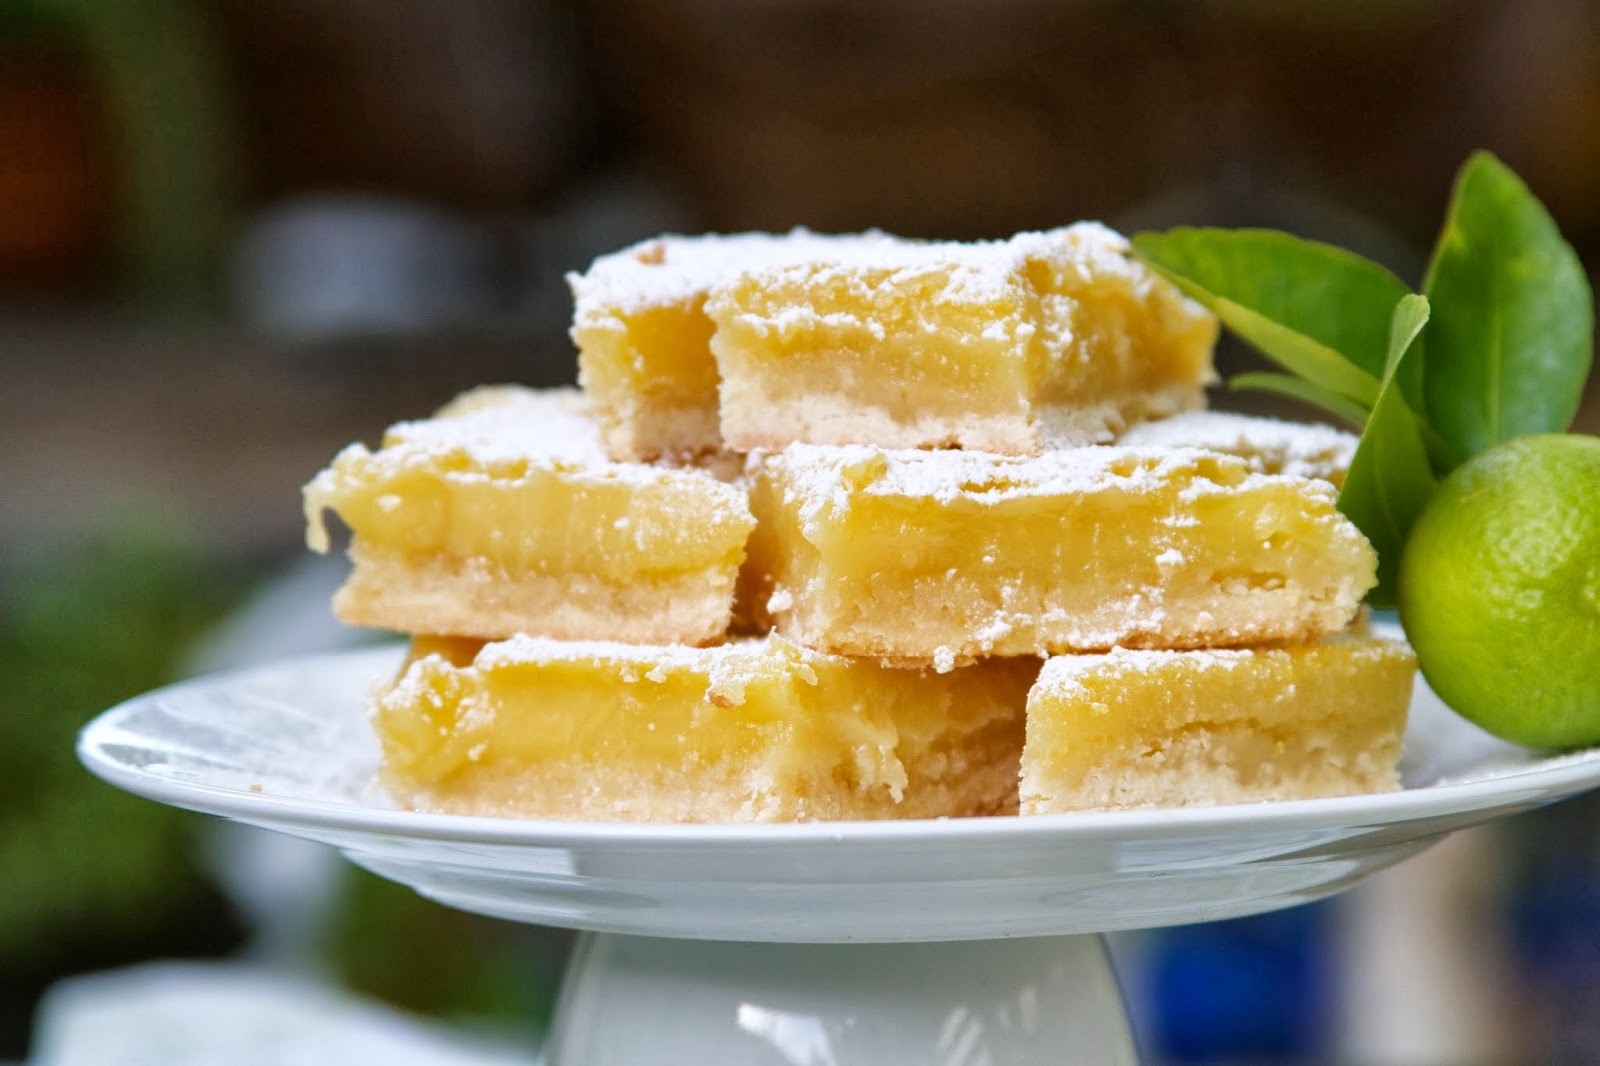 Ina Garten Bars Key Lime Pie Bars